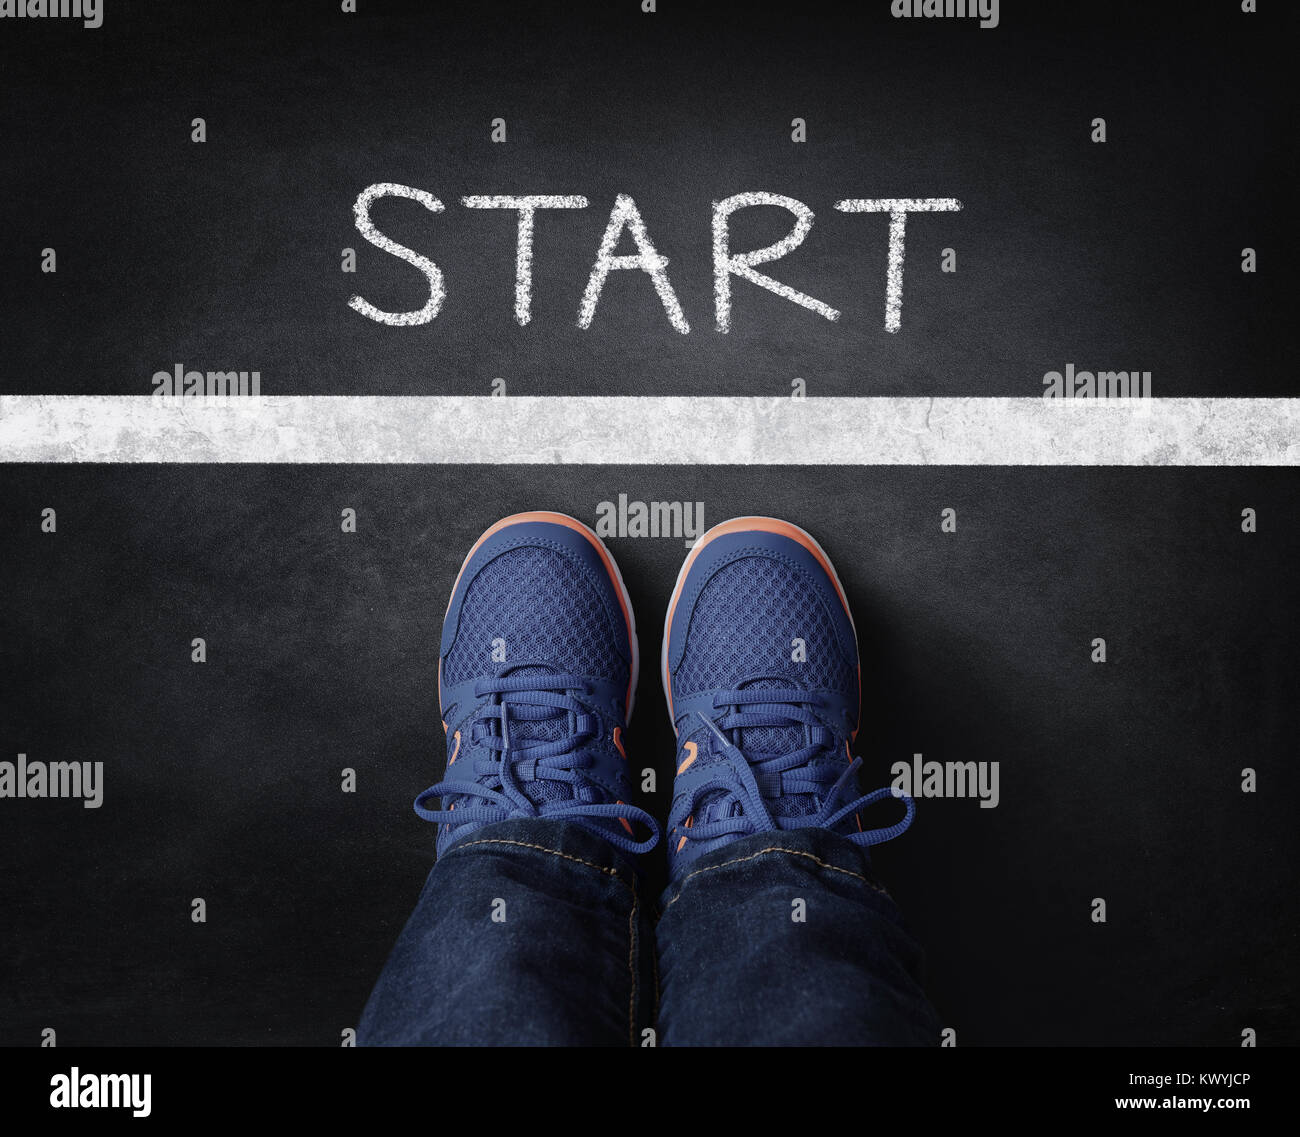 Start line child in sneakers standing next to chalk starting line on blackboard - Stock Image